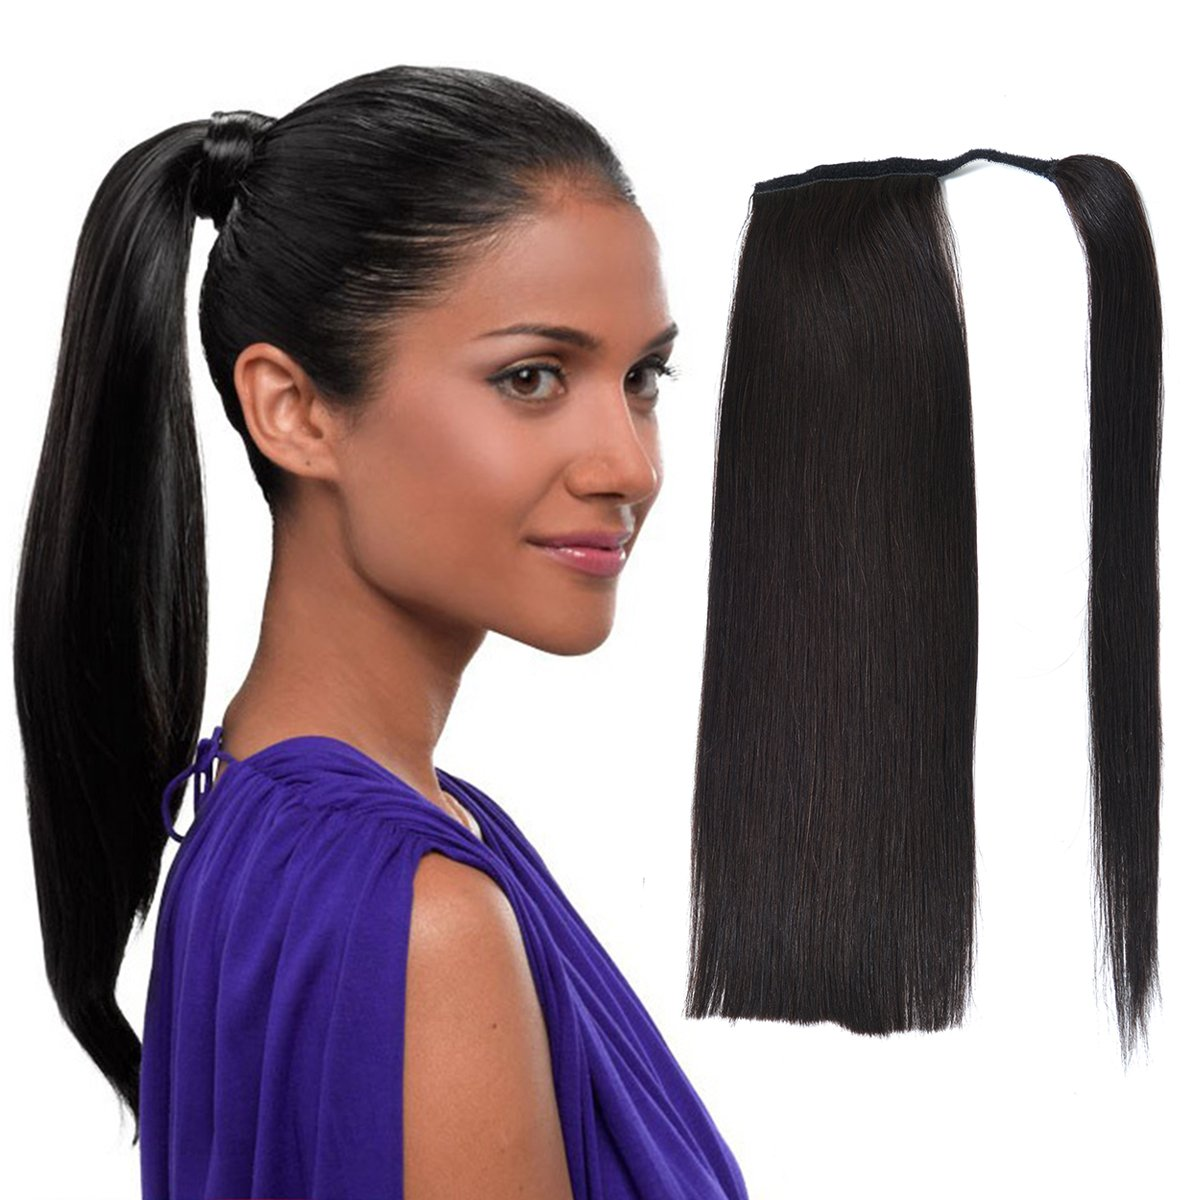 Amazon Com 22 Human Hair Ponytail Wrap Around Clip In Ponytail Hair Extensions For Women Off Black 1b 100g 3 5oz Beauty